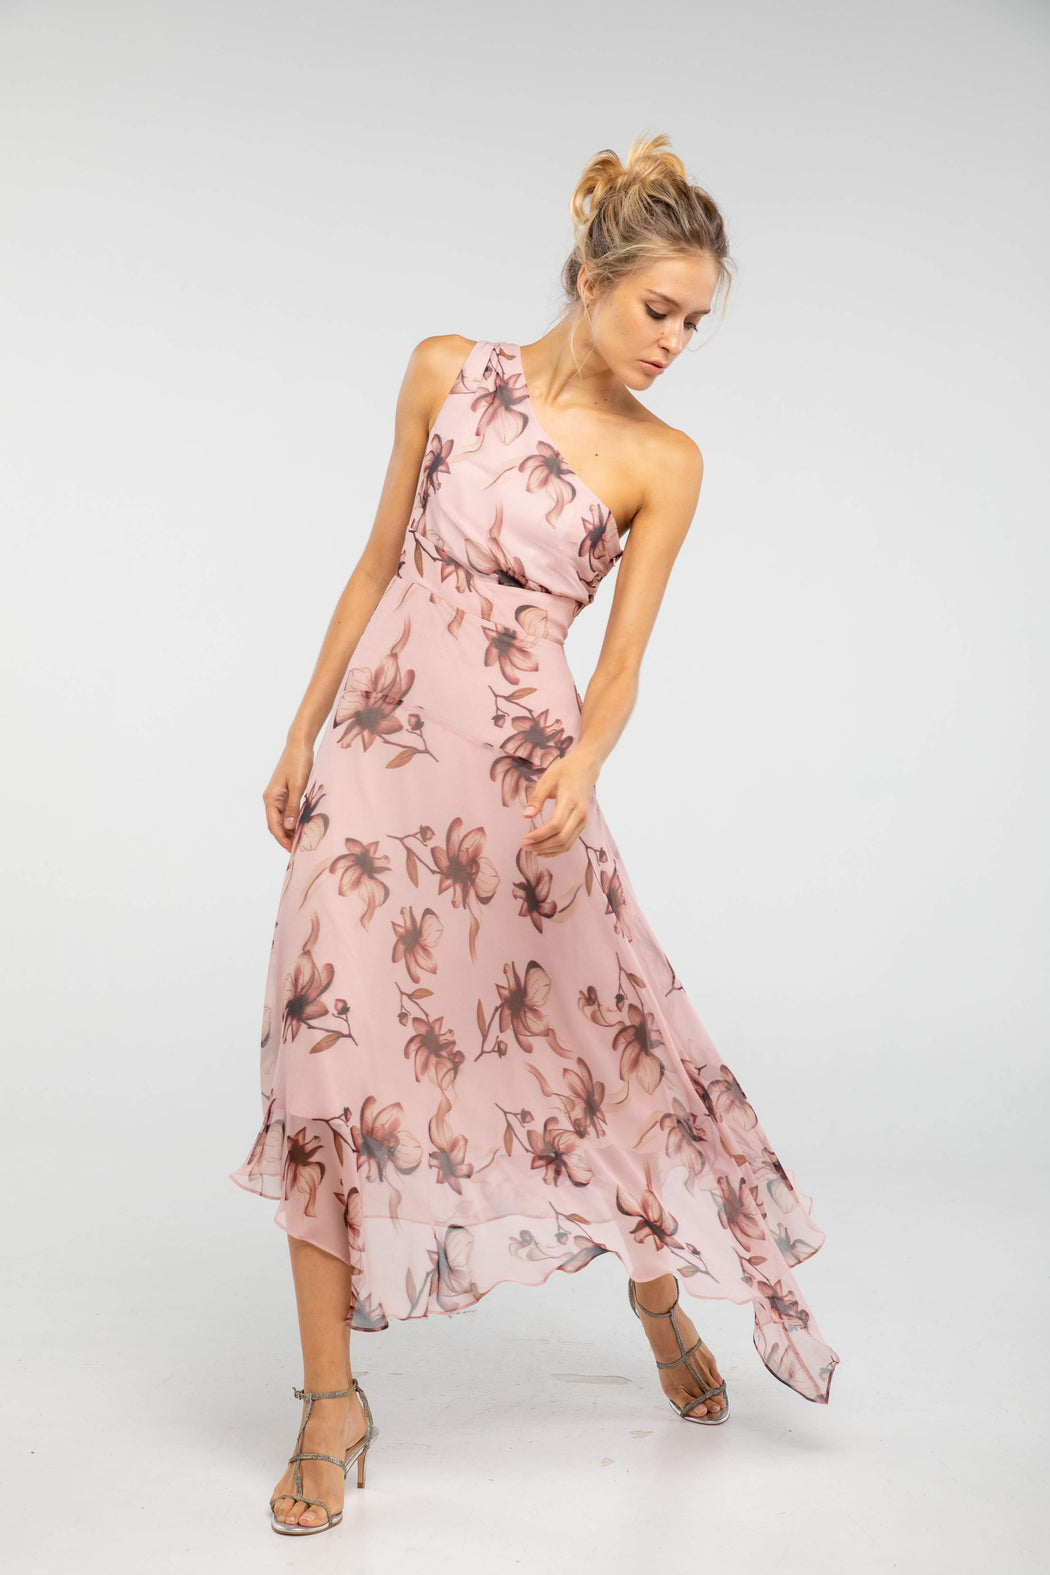 Salome Floral Print Midi Dress - SAU LEE